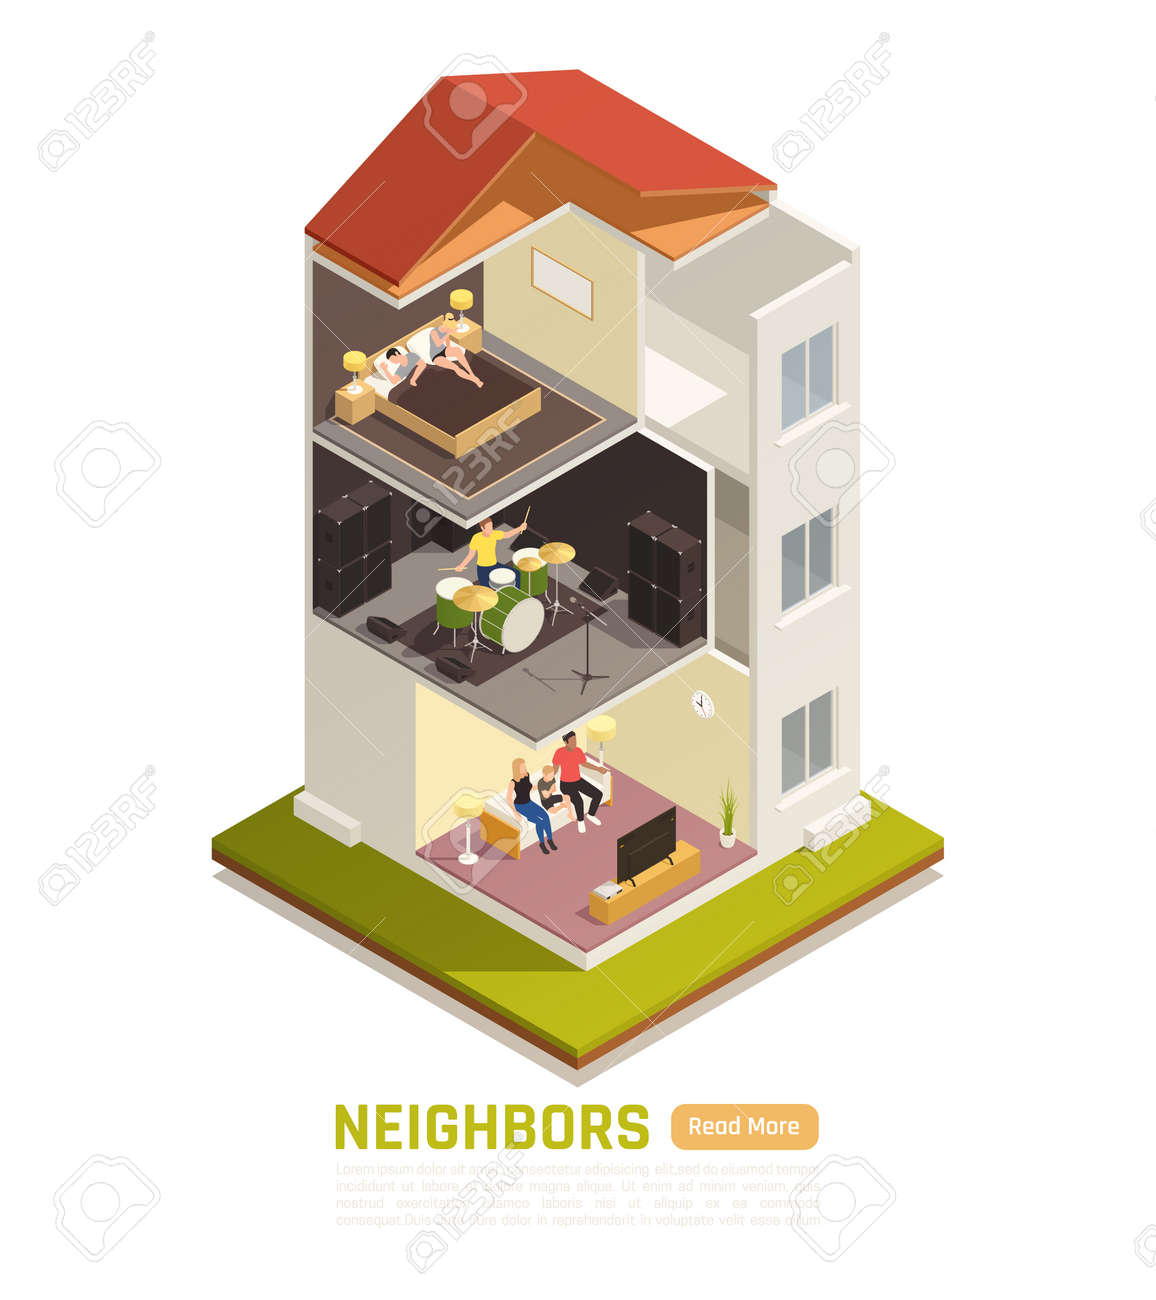 Neighbors relations conflicts excessive noise nuisance suffering from loud music isometric building cutout view vector illustration - 157078068